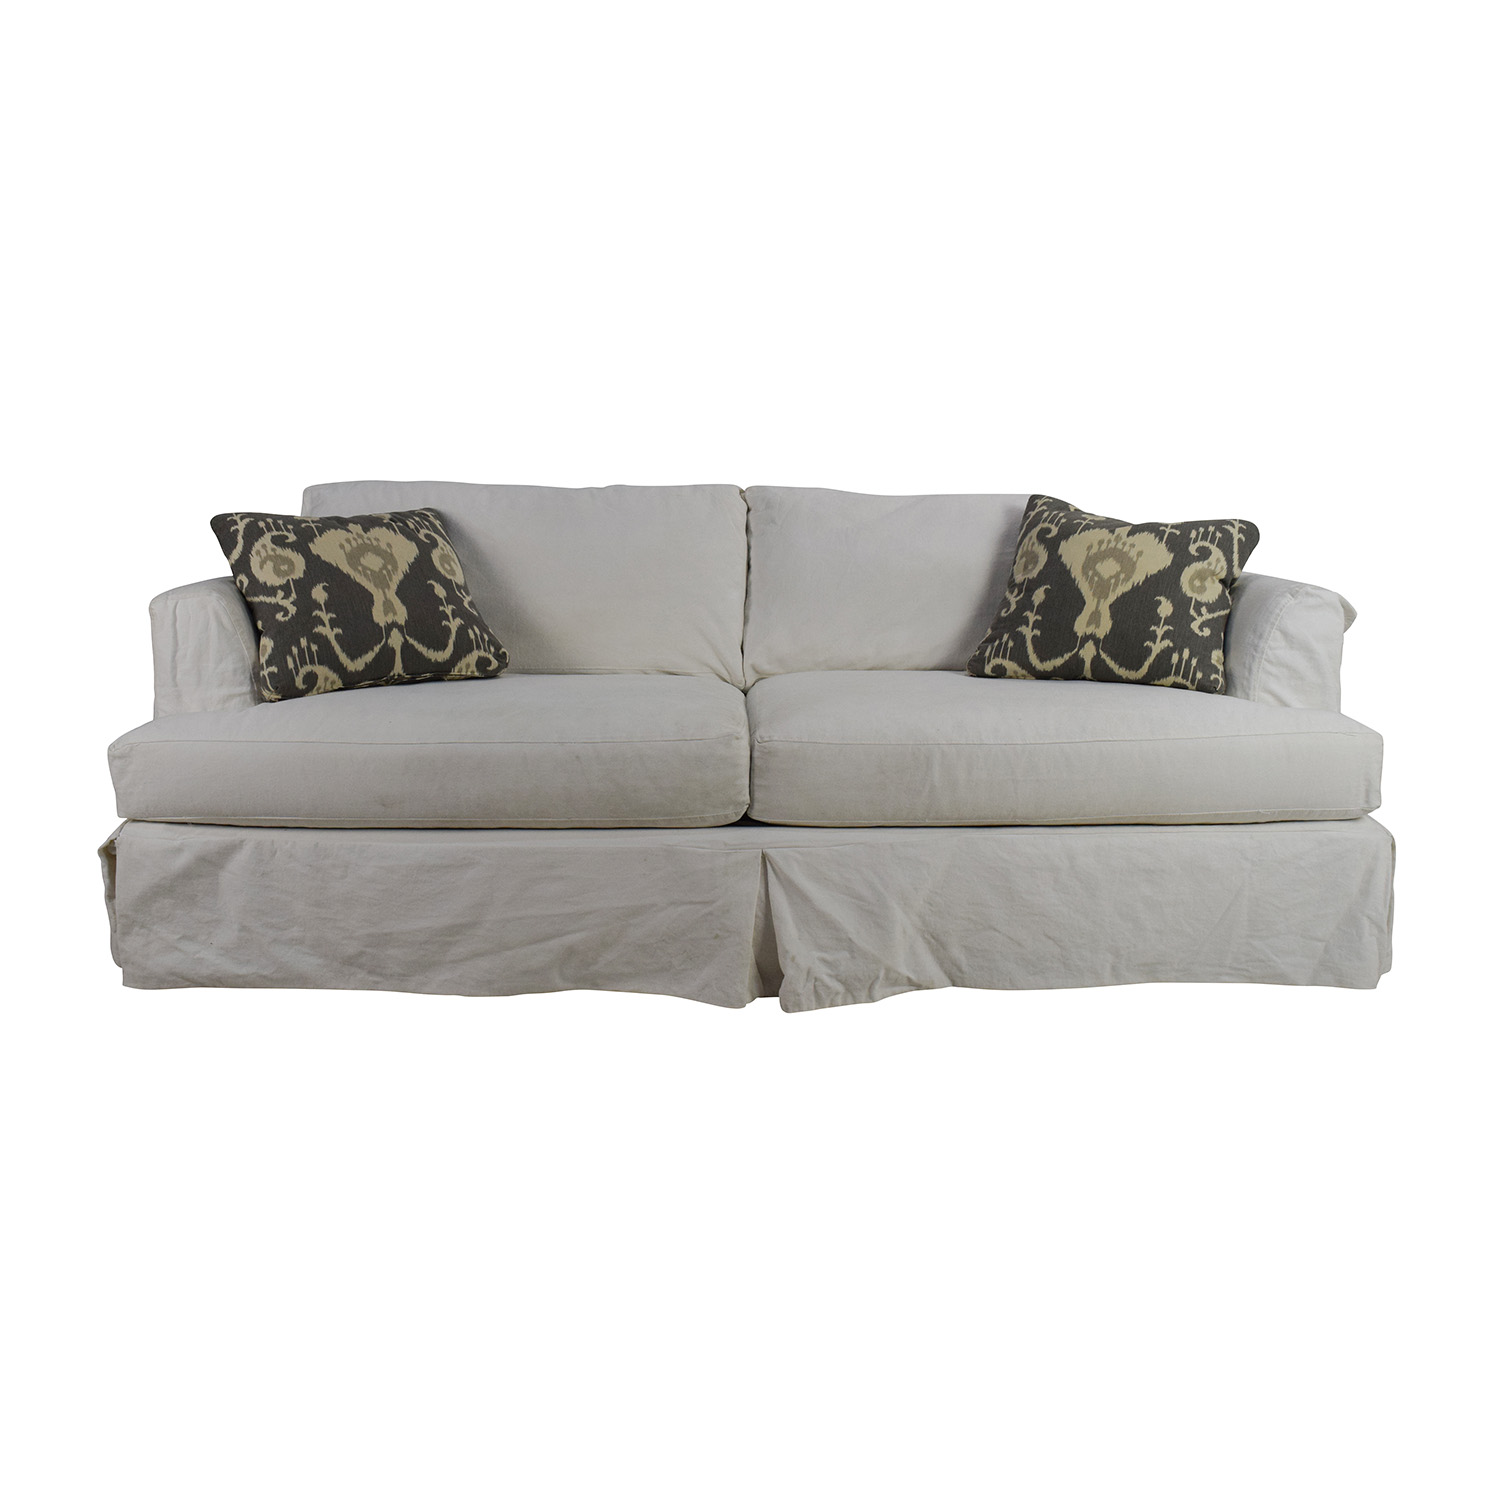 Jennifer Convertibles Jennifer Convertibles Melissa Slipcovered Sofa price